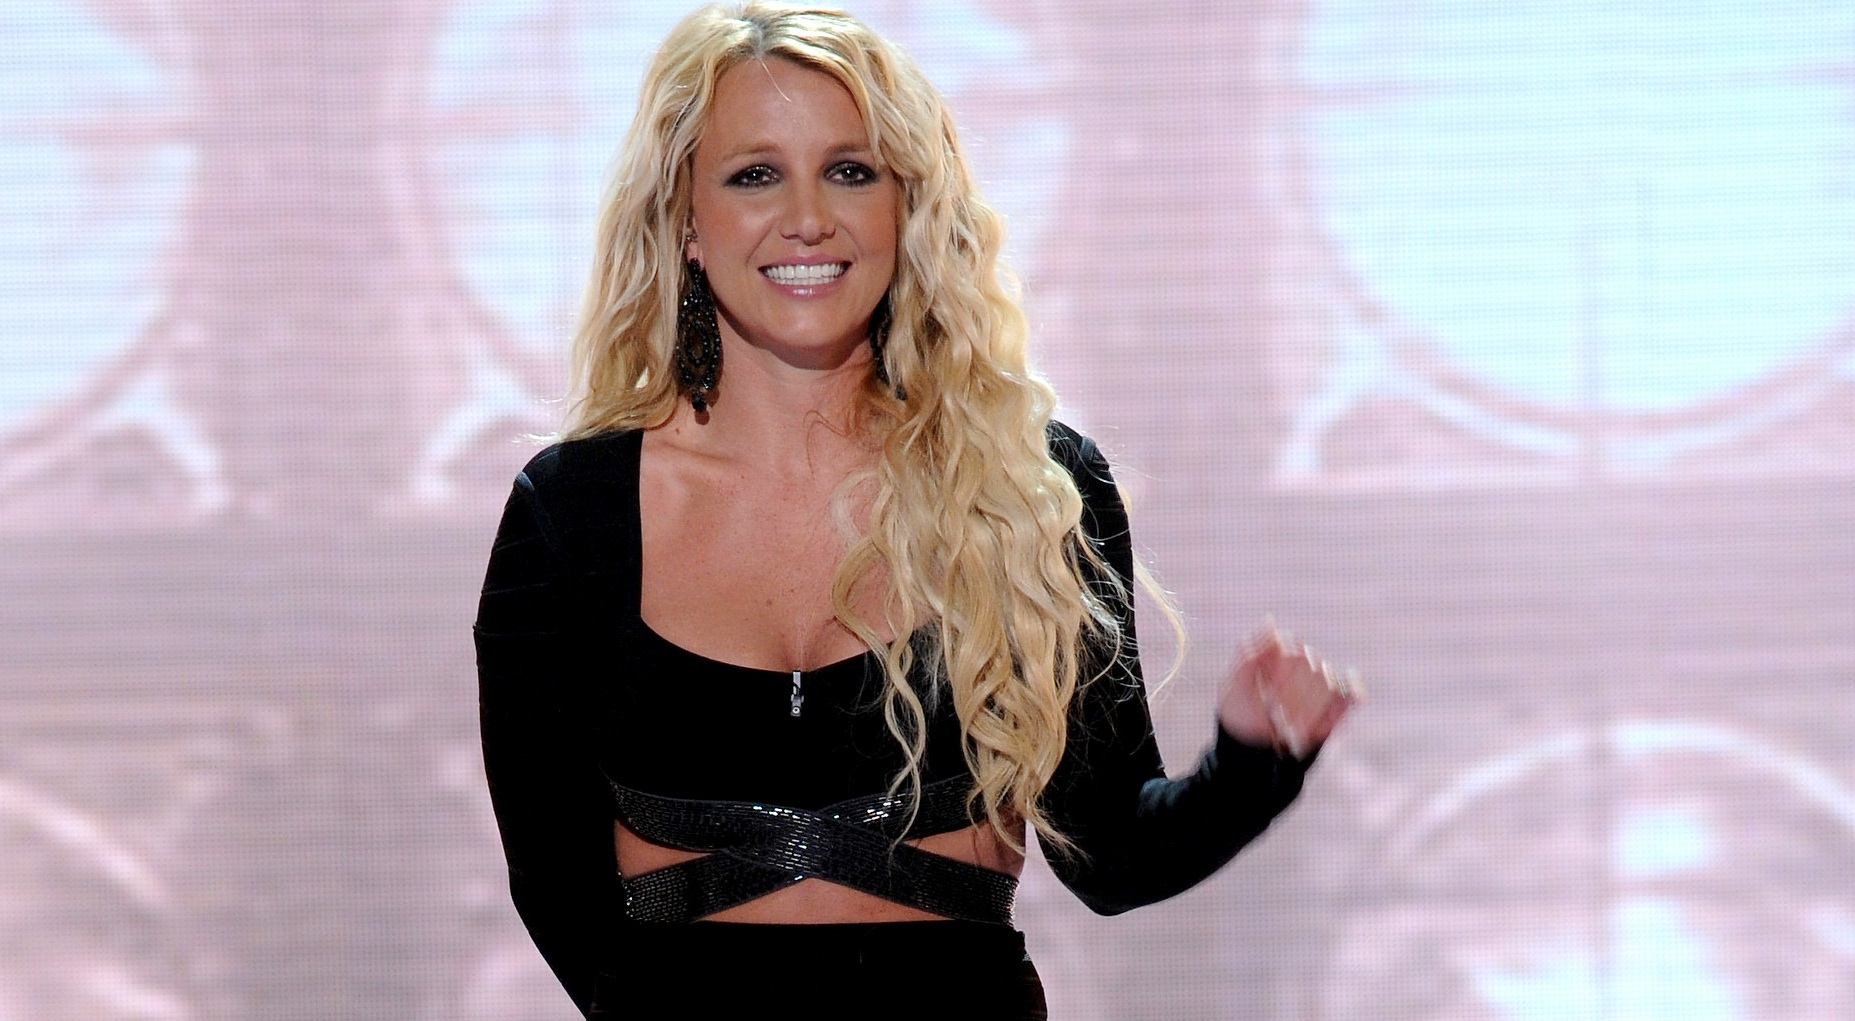 Britney Spears is Back in a Big Way!